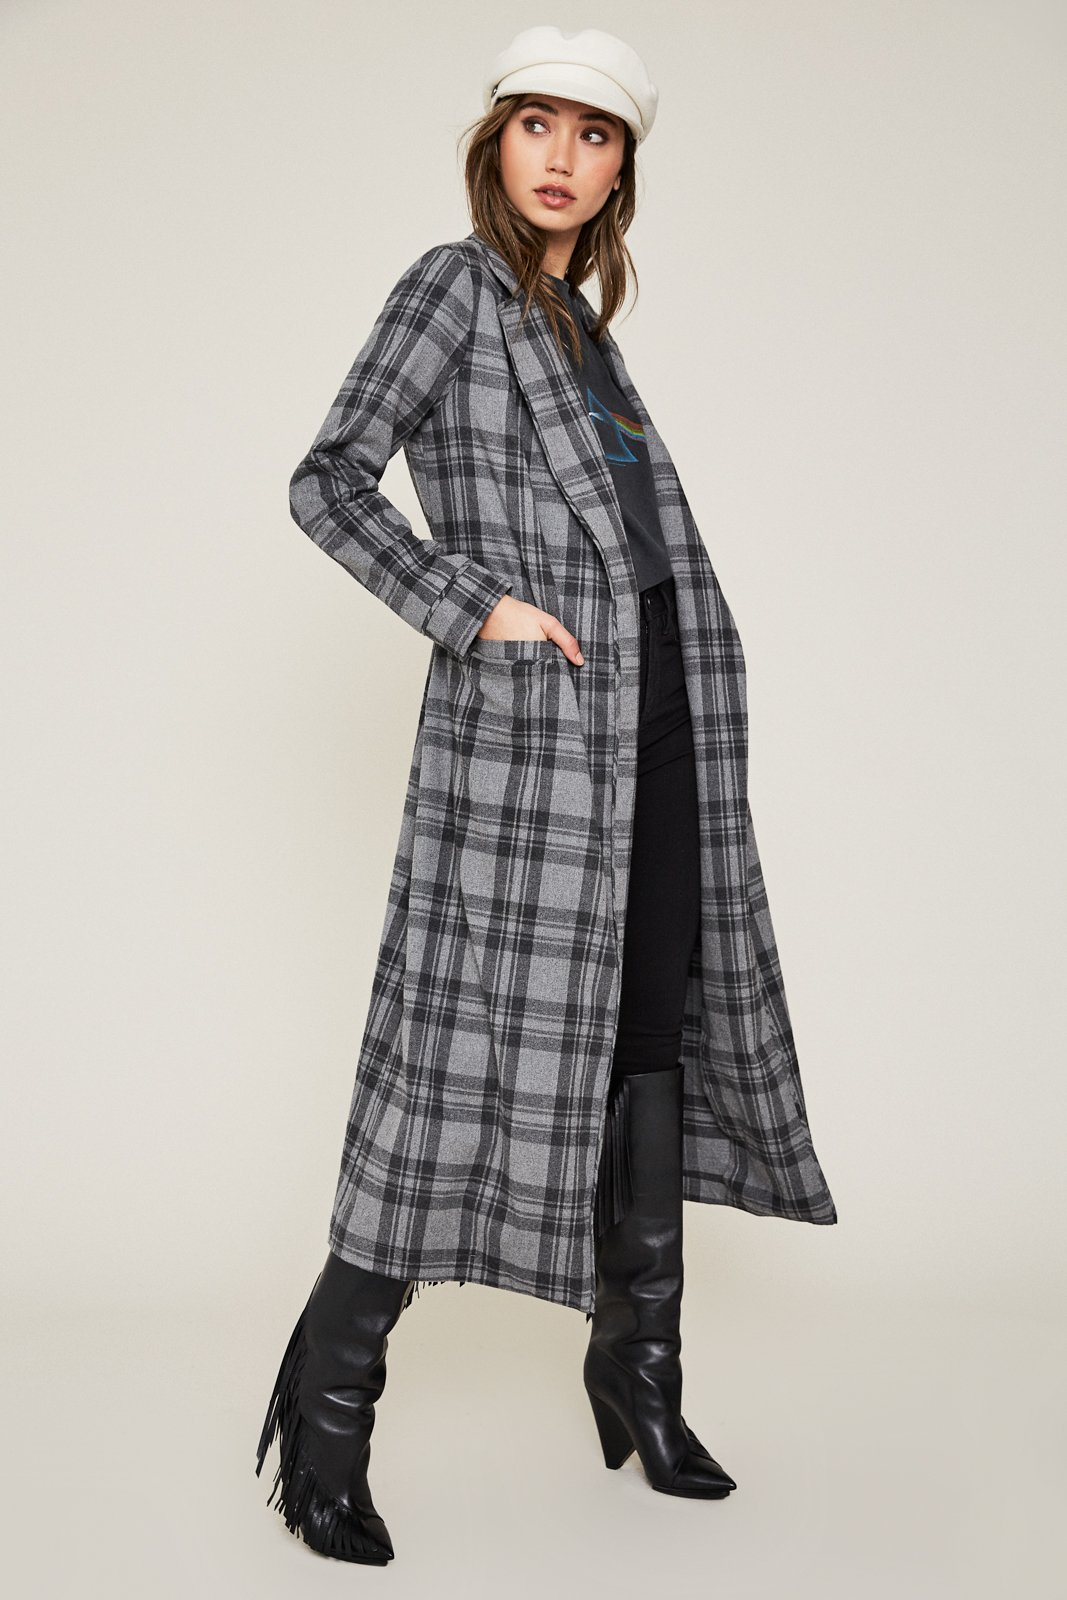 https://shopafrm.com/collections/outerwear/products/sol-flannel-wrap-coat-grey-plaid?variant=4868051238942